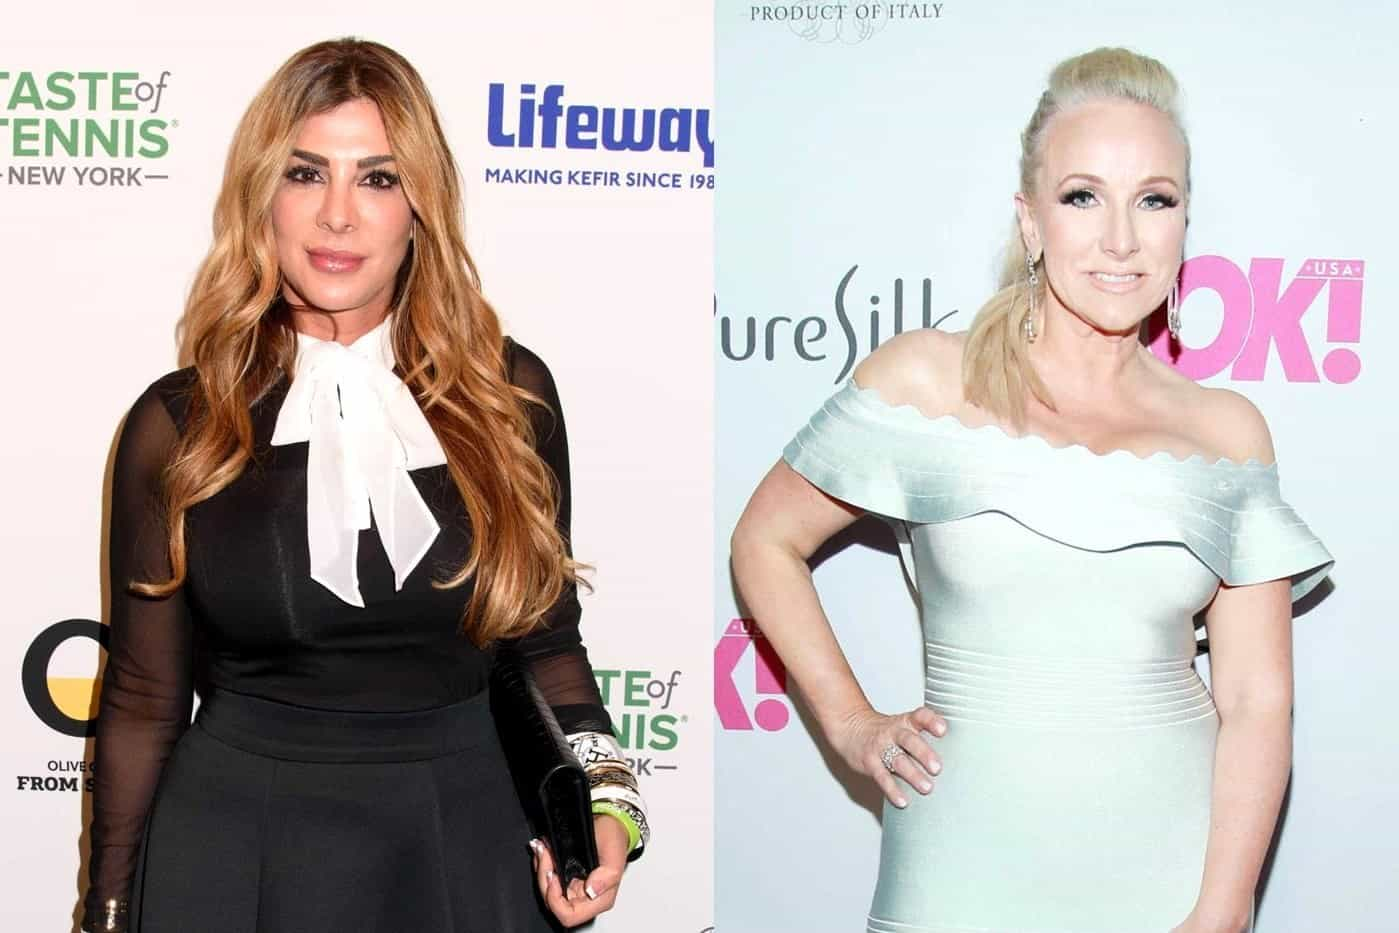 RHONJ's Siggy Flicker Mocks Margaret Josephs' Past Infidelity in Twitter Feud